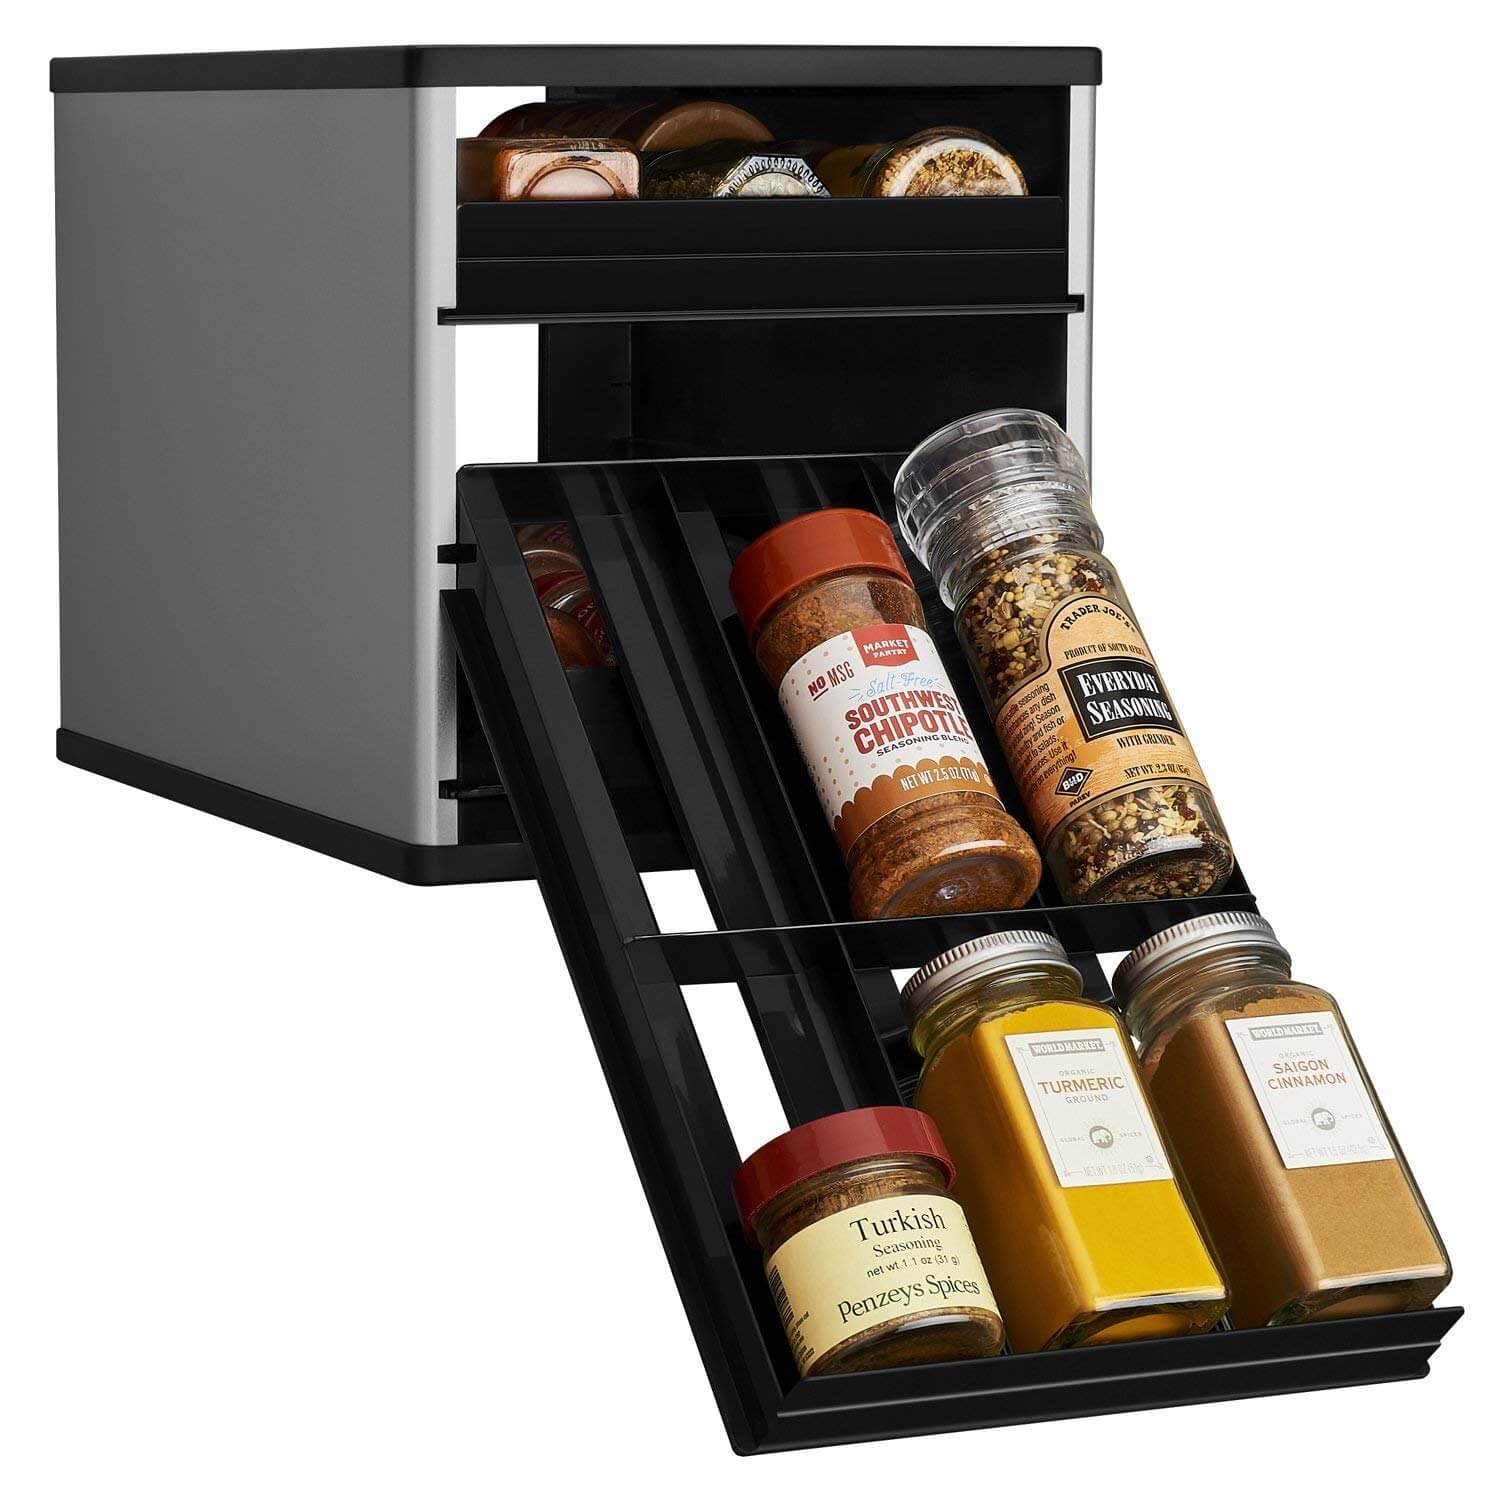 YouCopia Original SpiceStack Spice Organizer With Universal Drawer